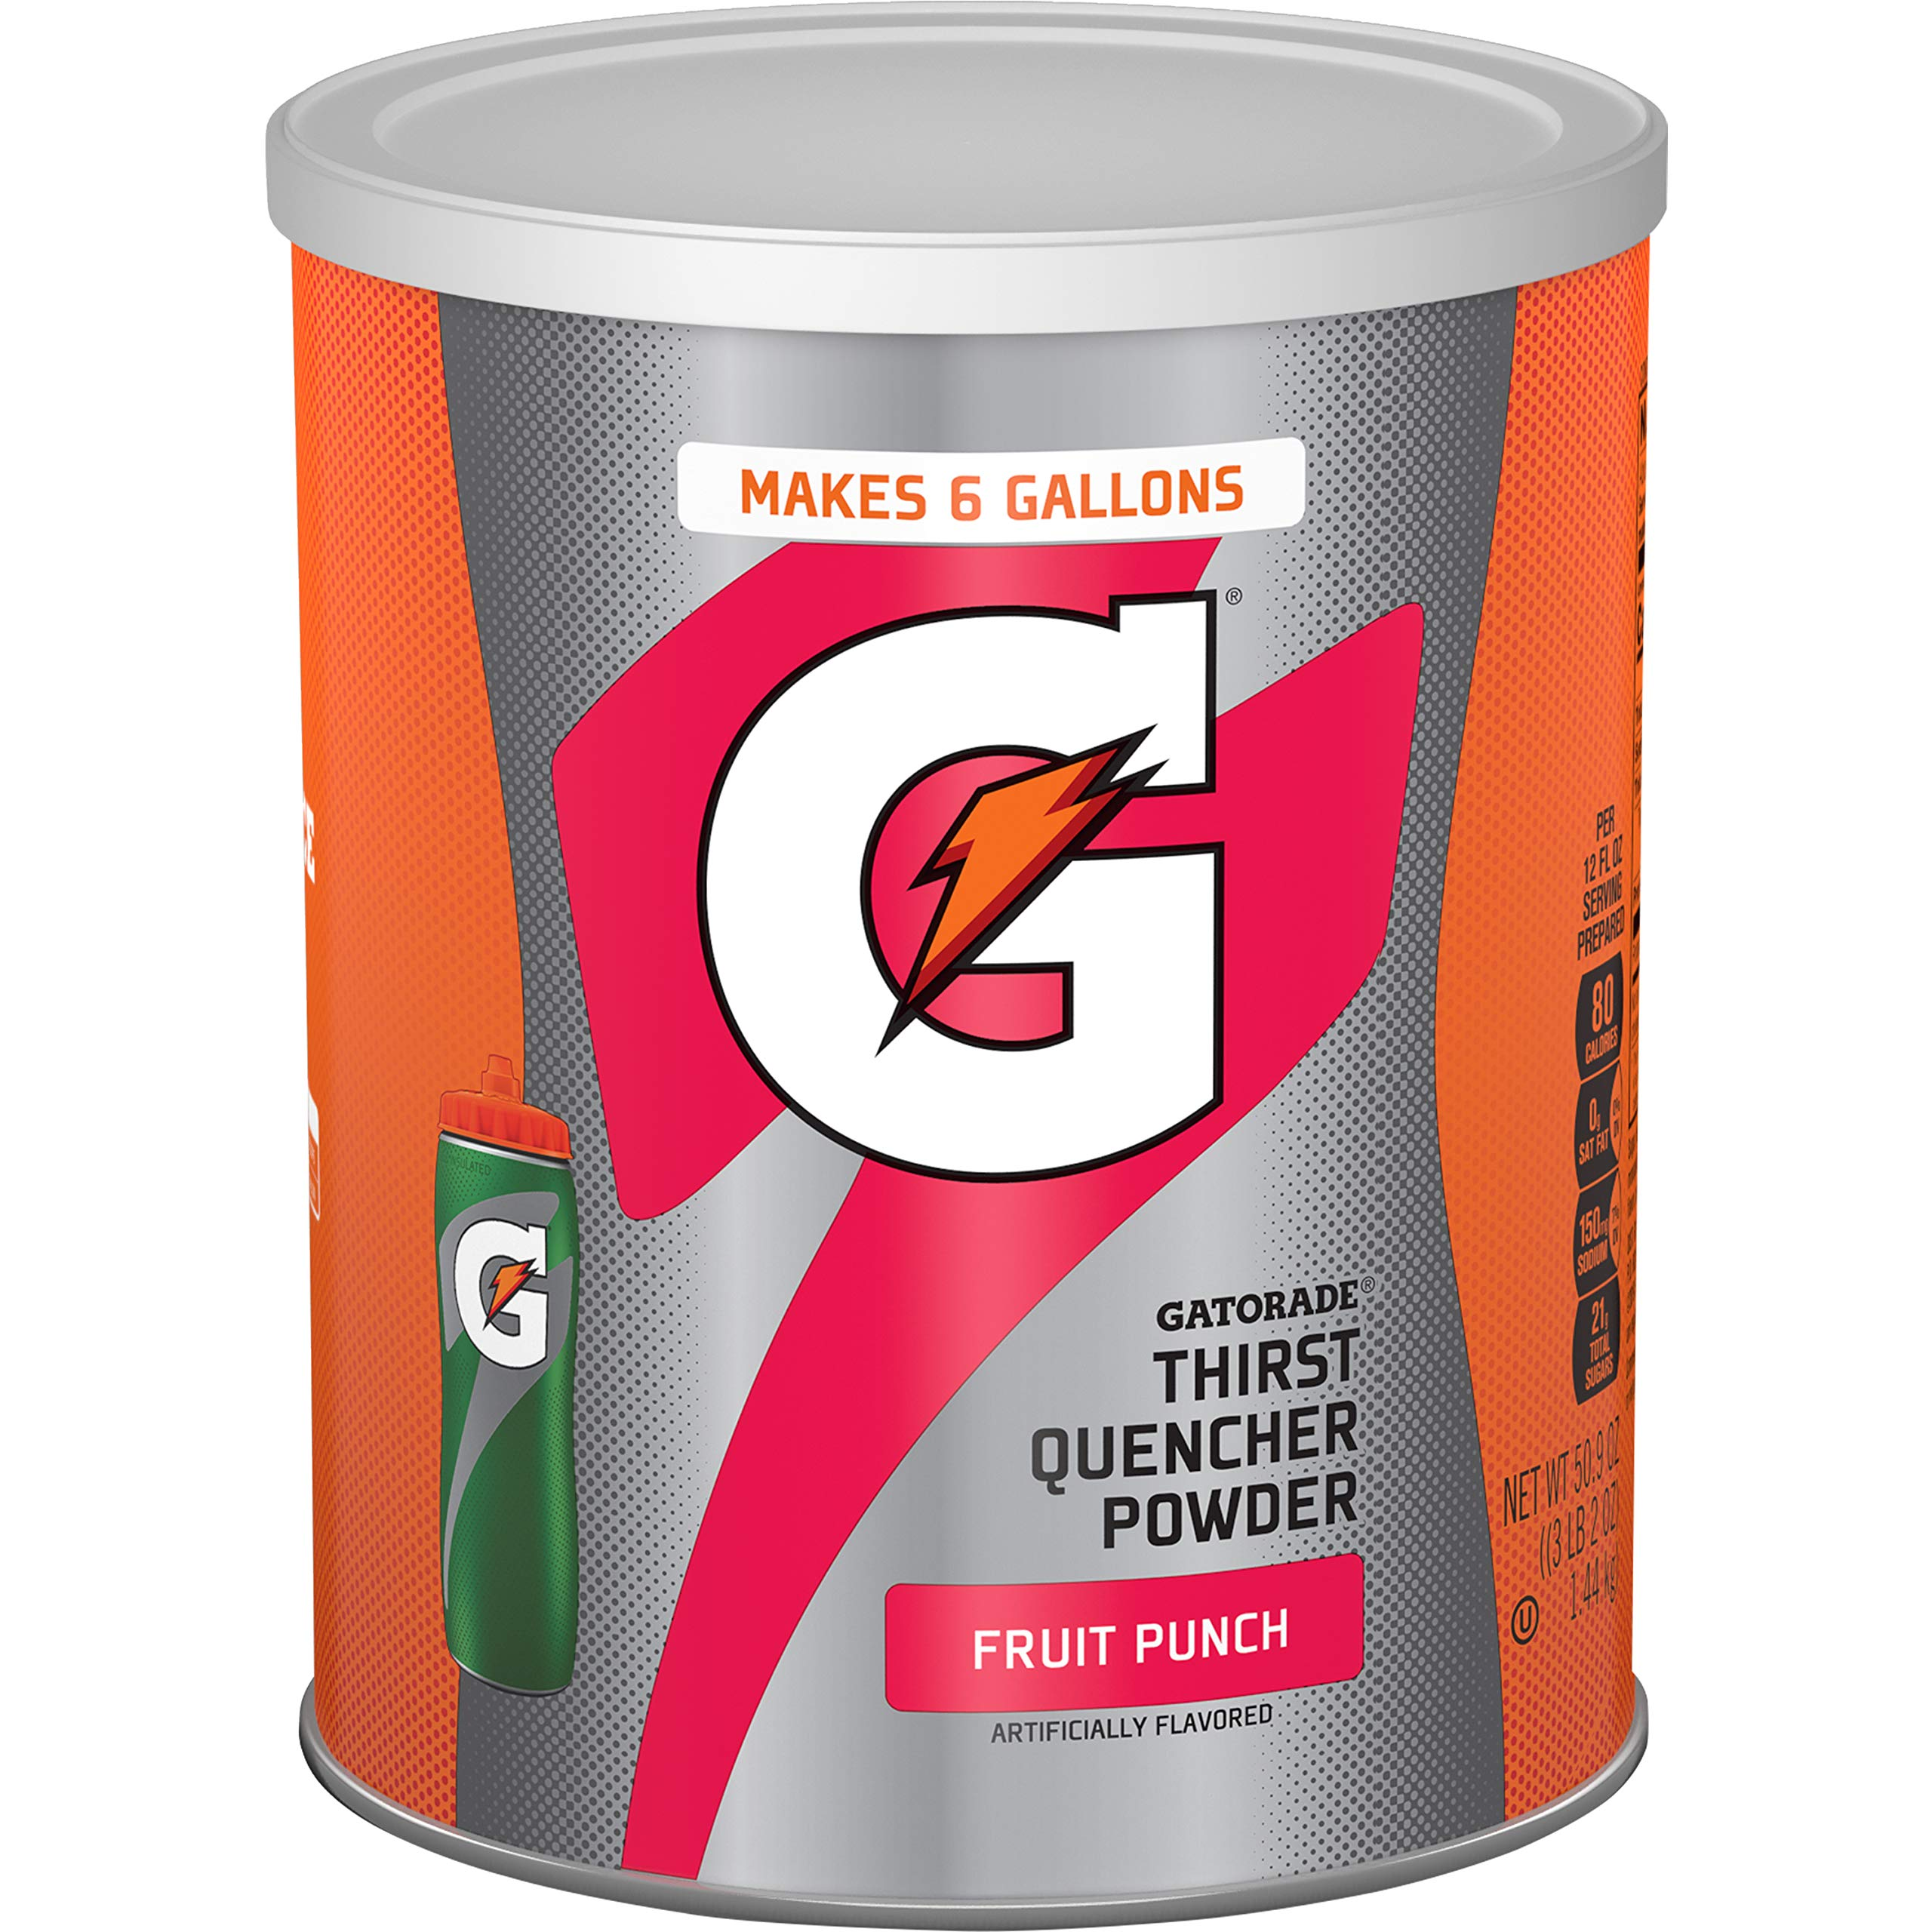 Gatorade Thirst Quencher Drink, Fruit Punch, 51 Ounce Powder, Pack of 1